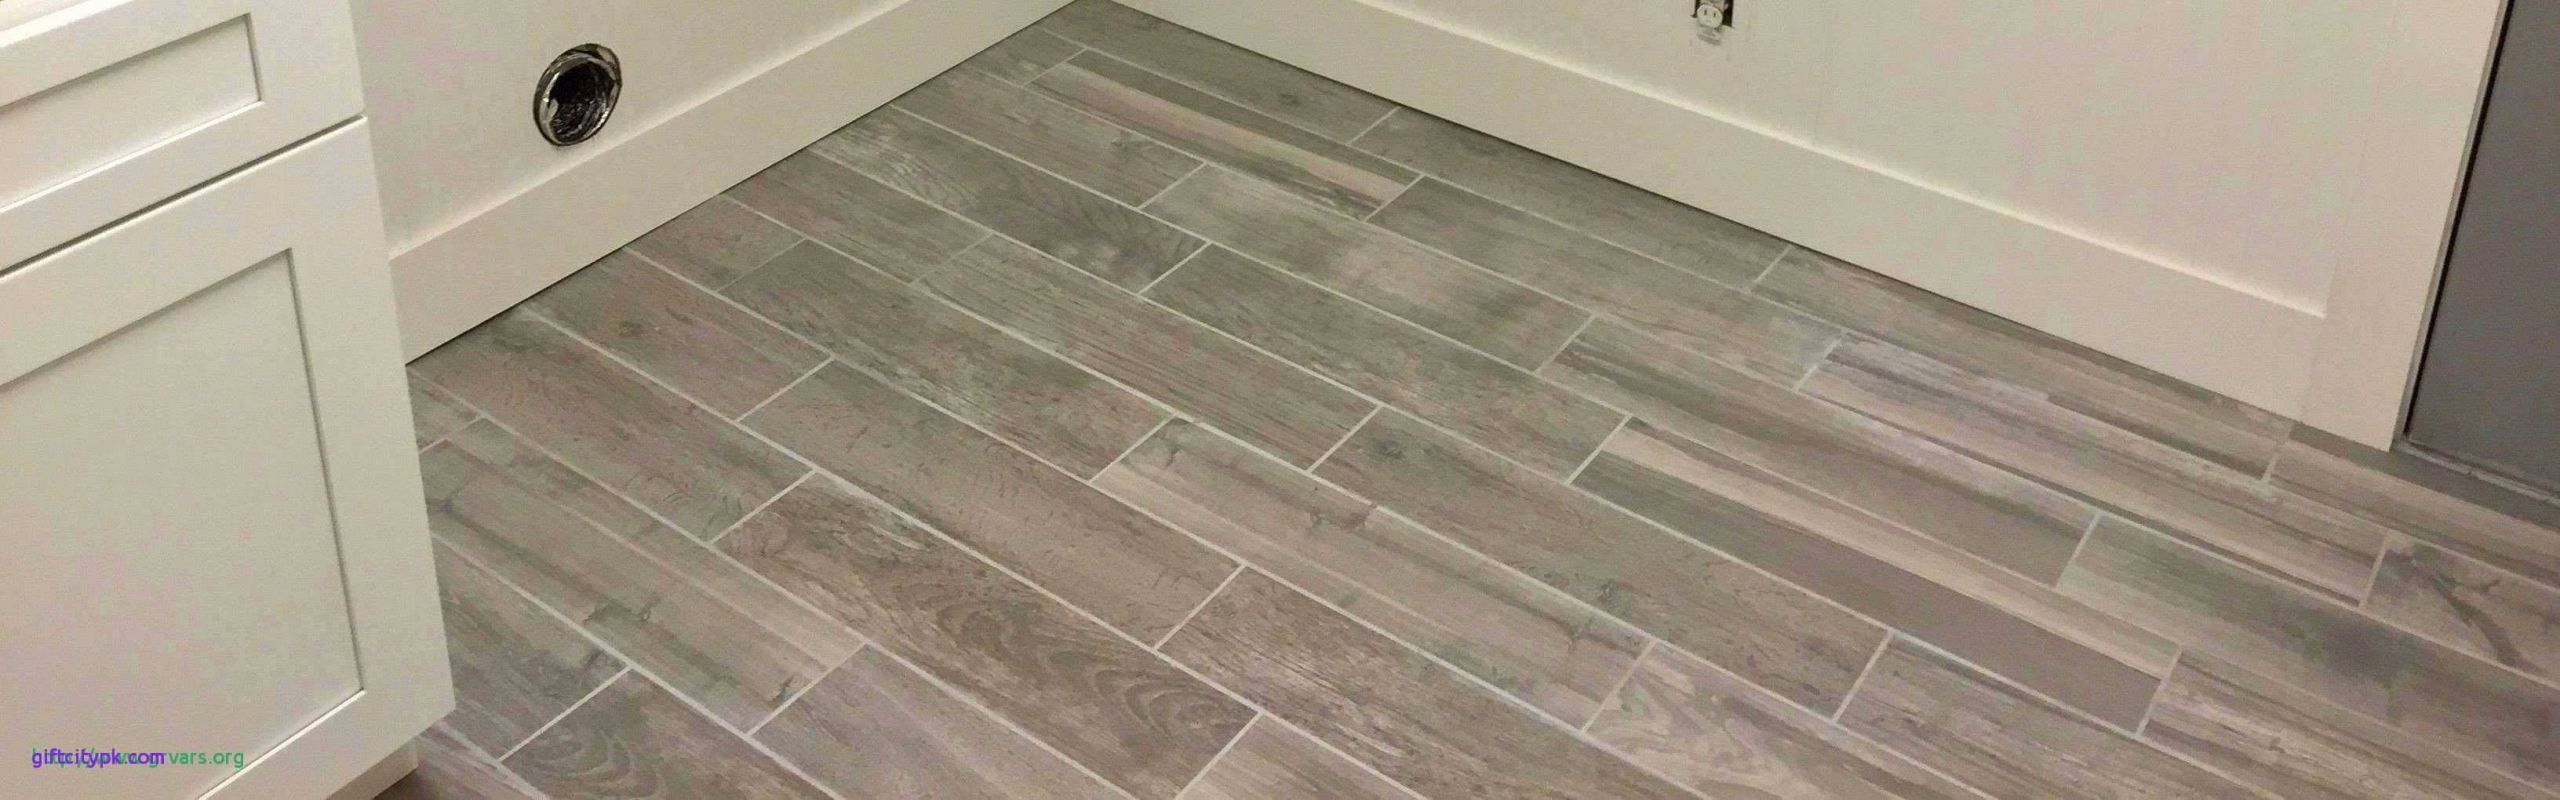 laminate hardwood flooring of chemical free flooring tcitypk tcitypk inside elegant unique bathroom tiling ideas best h sink install bathroom i 0d luxury shower tile